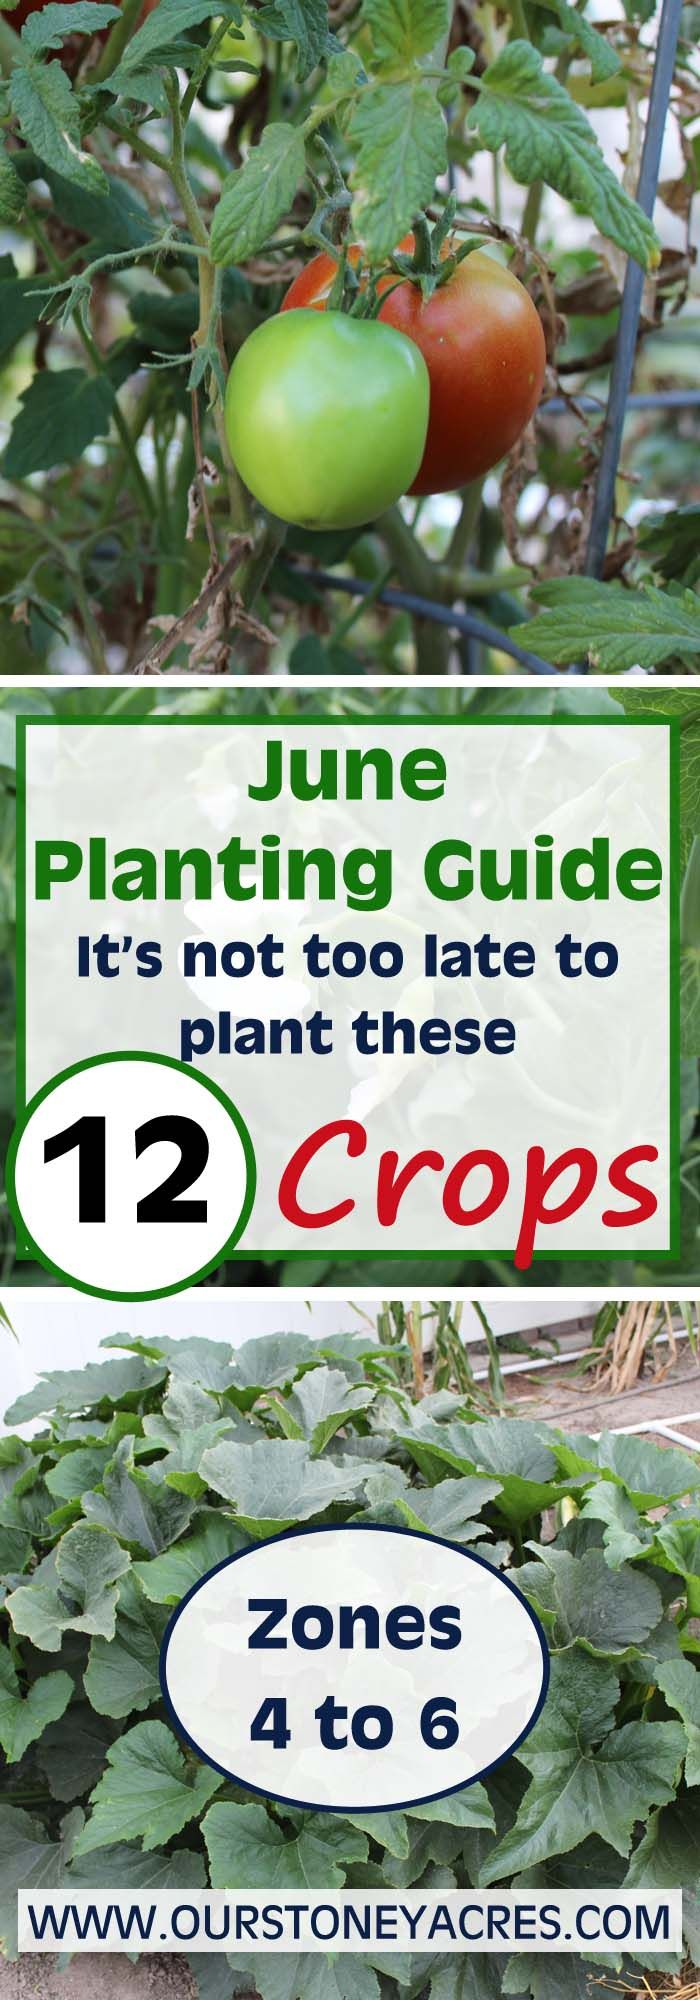 It's not too late to get these 12 vegetables planted in your garden. You can plant all of these crops any time in the month of June and still expect a decent harvest!